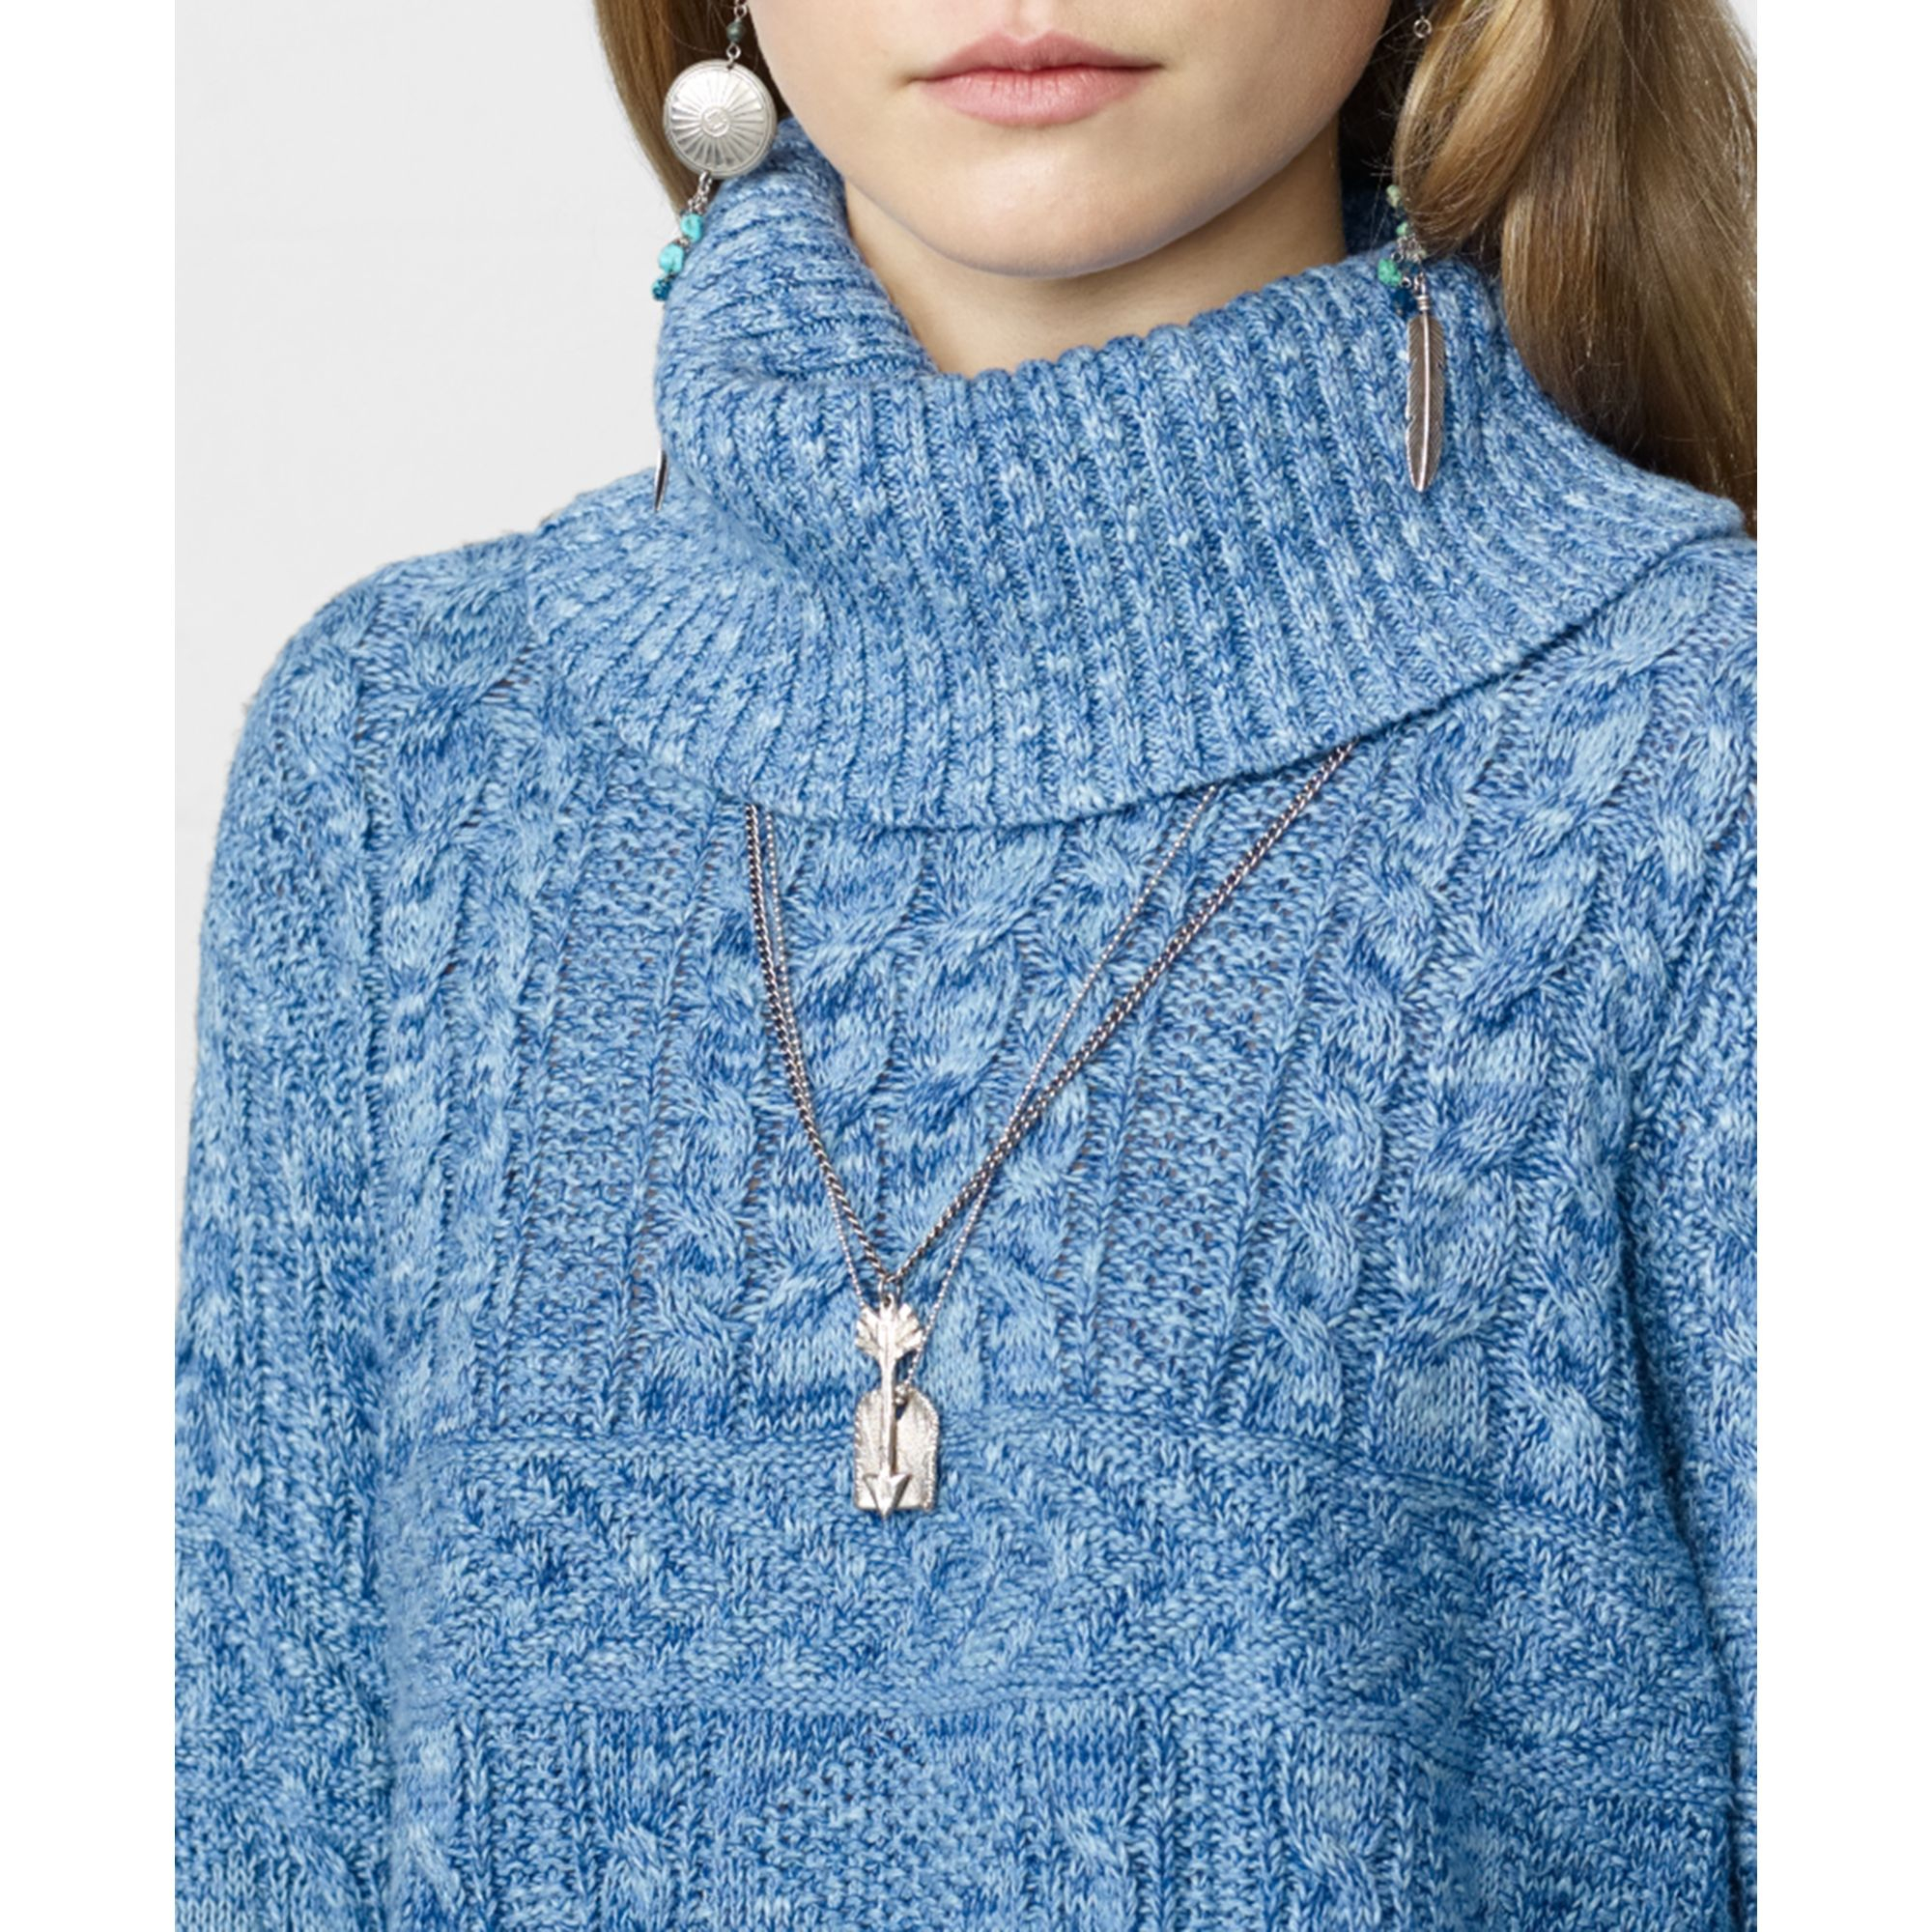 Denim & supply ralph lauren Cropped Cable Knit Turtleneck Sweater ...